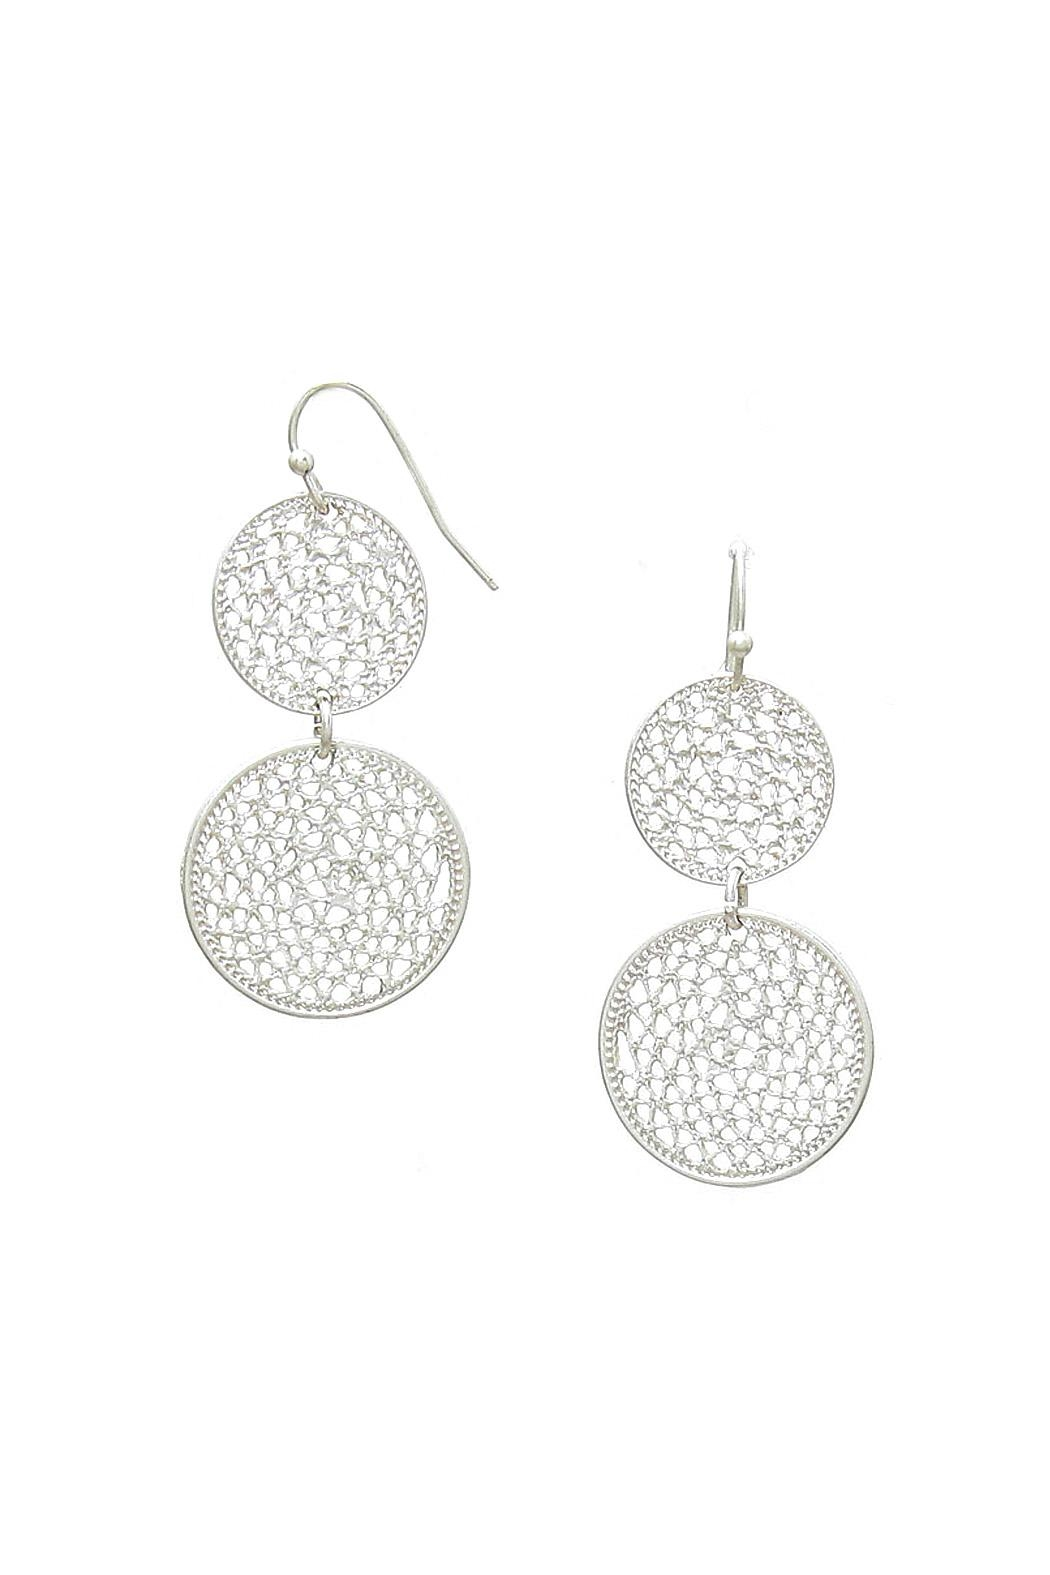 Wild Lilies Jewelry  Silver Circle Earrings - Main Image